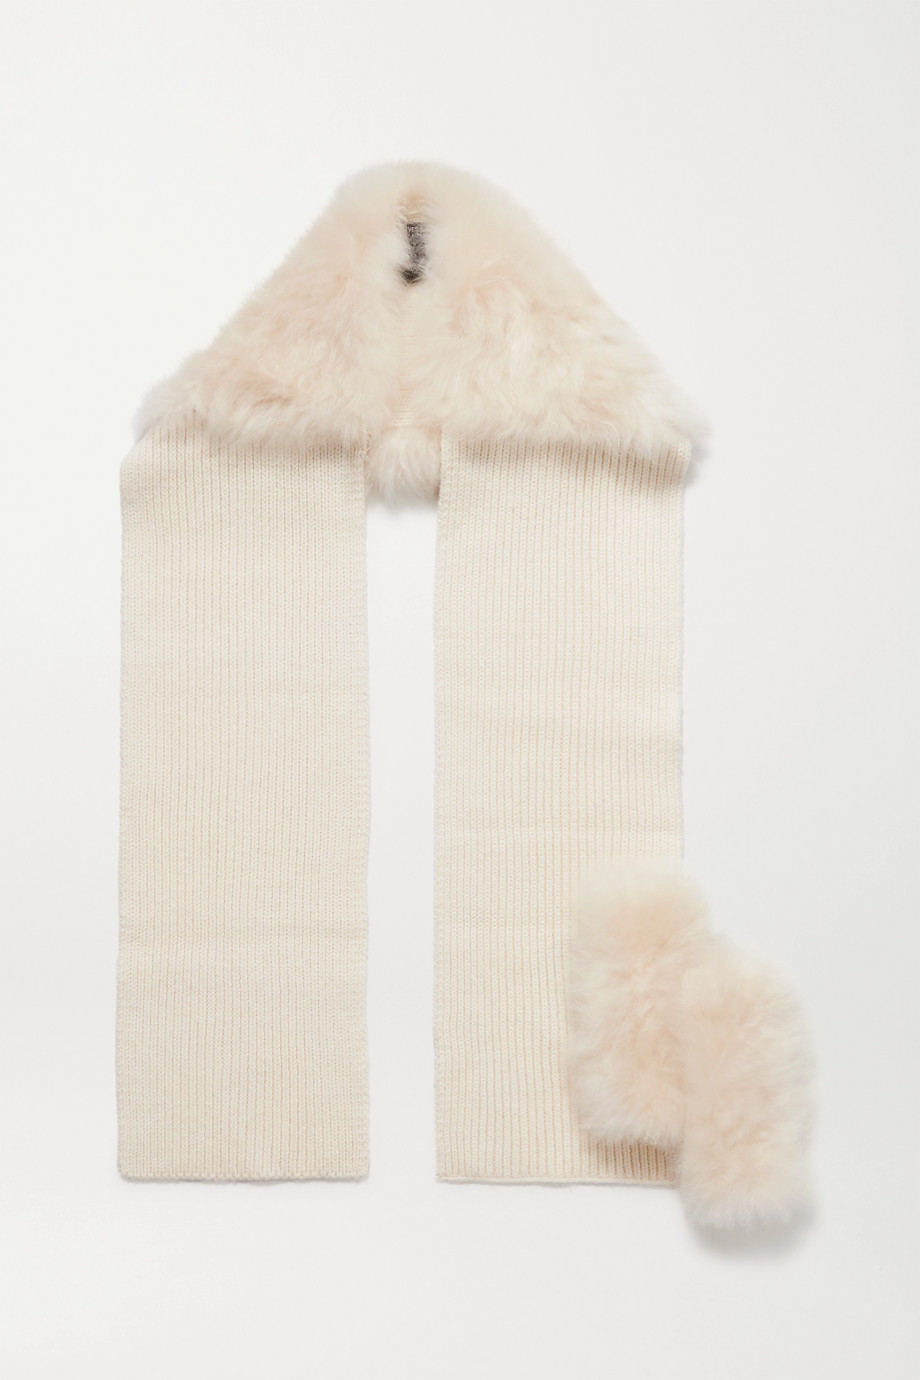 Yves Salomon Shearling-trimmed ribbed wool and cashmere-blend gloves and scarf set